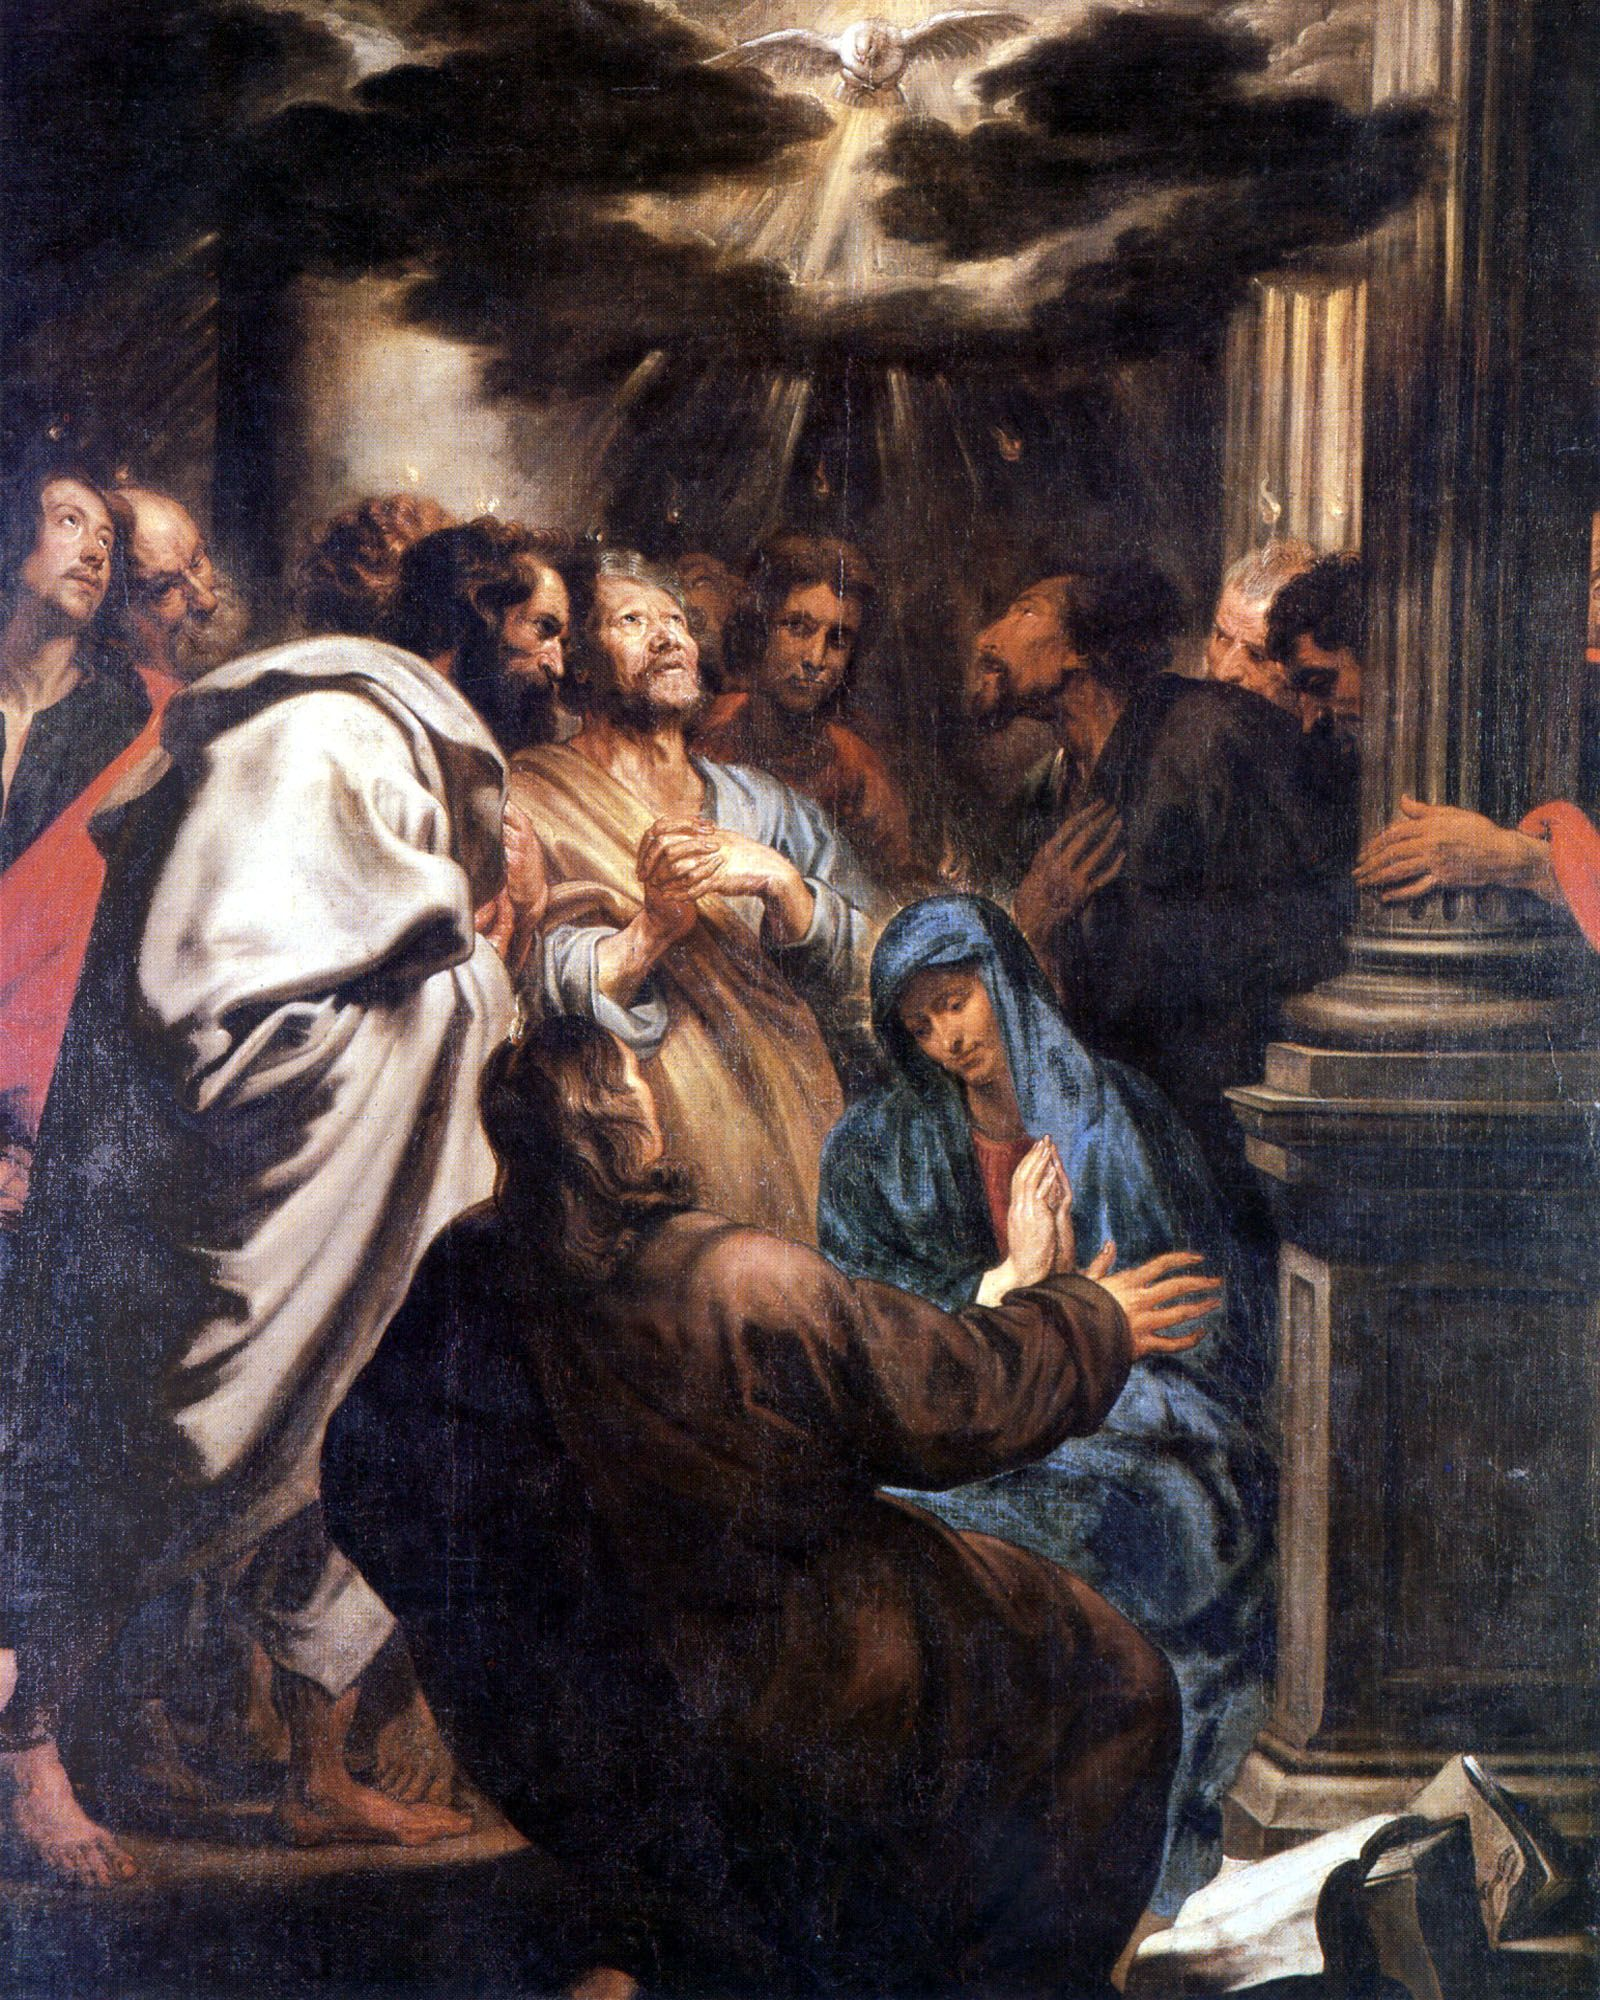 The Descent of the Holy Spirit - Anthony Van Dyck